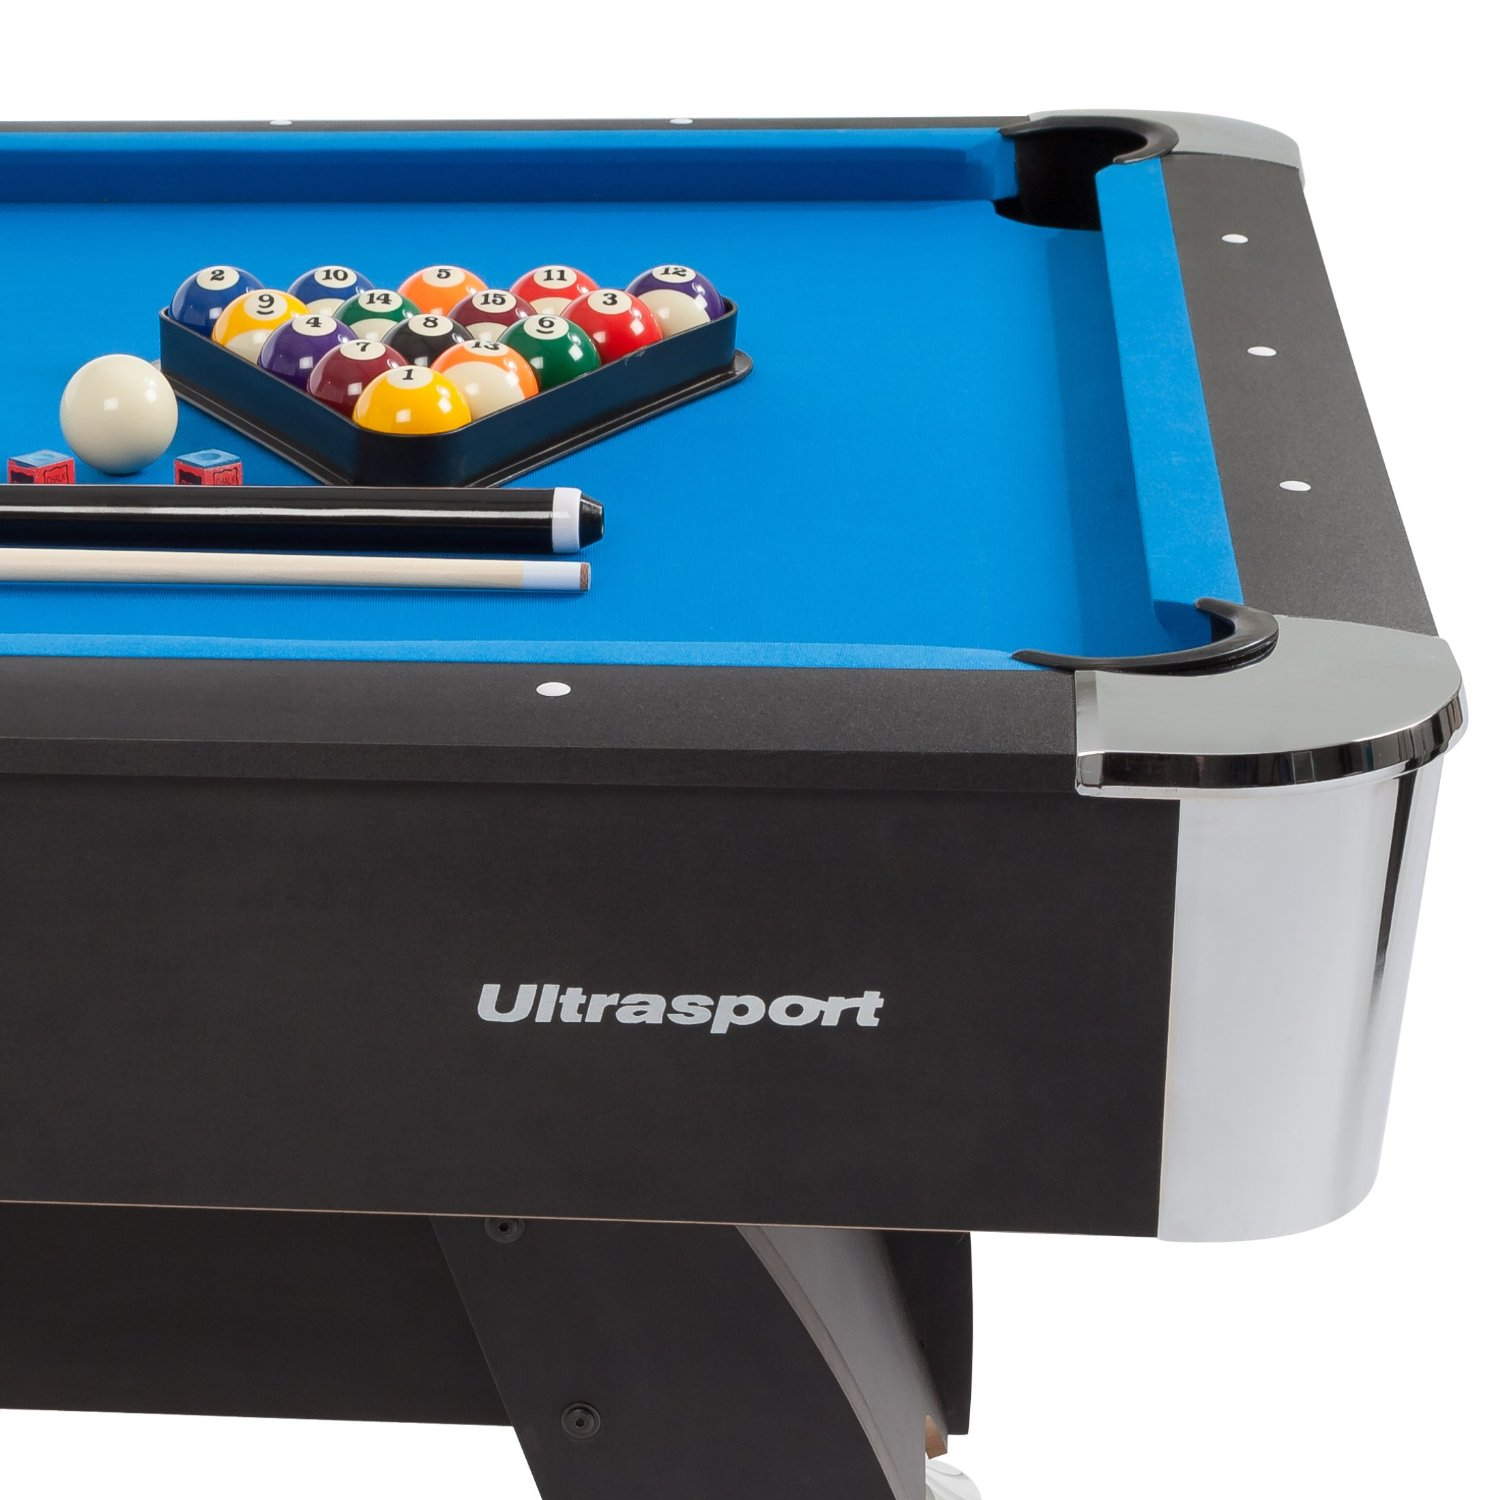 Ultrasport 8ft. Pool Billardtisch1